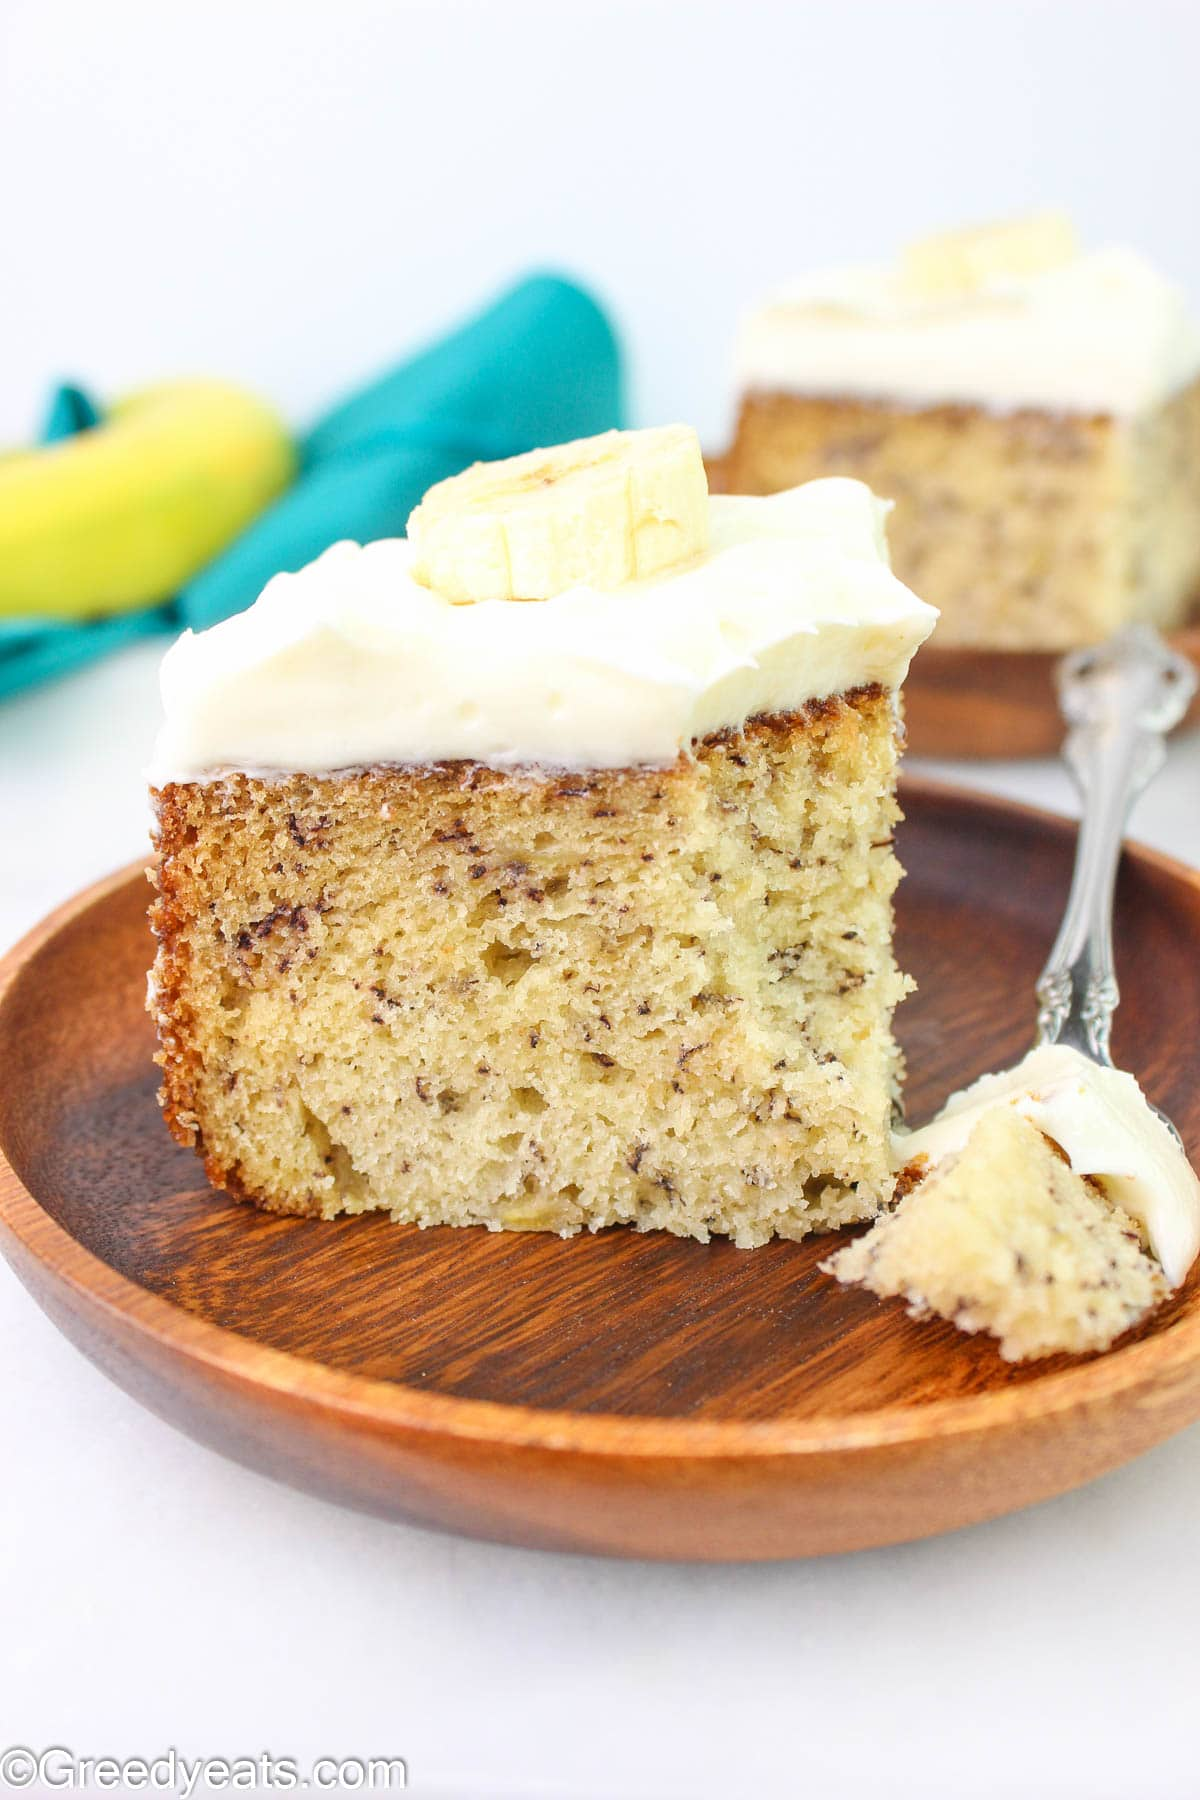 Soft, moist and the best Banana Cake recipe with creamy cream cheese frosting!